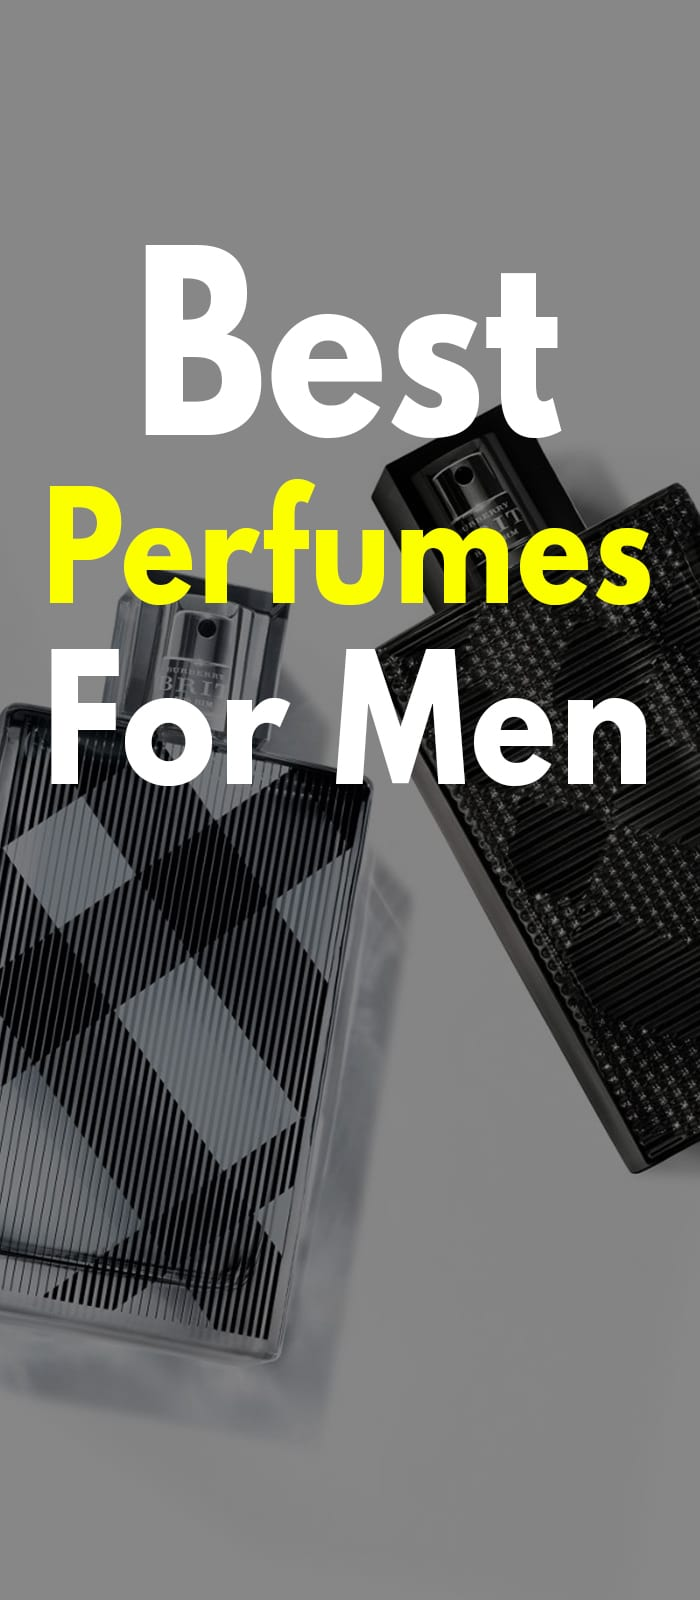 EDT-BURBERRY- Perfumes-for- men